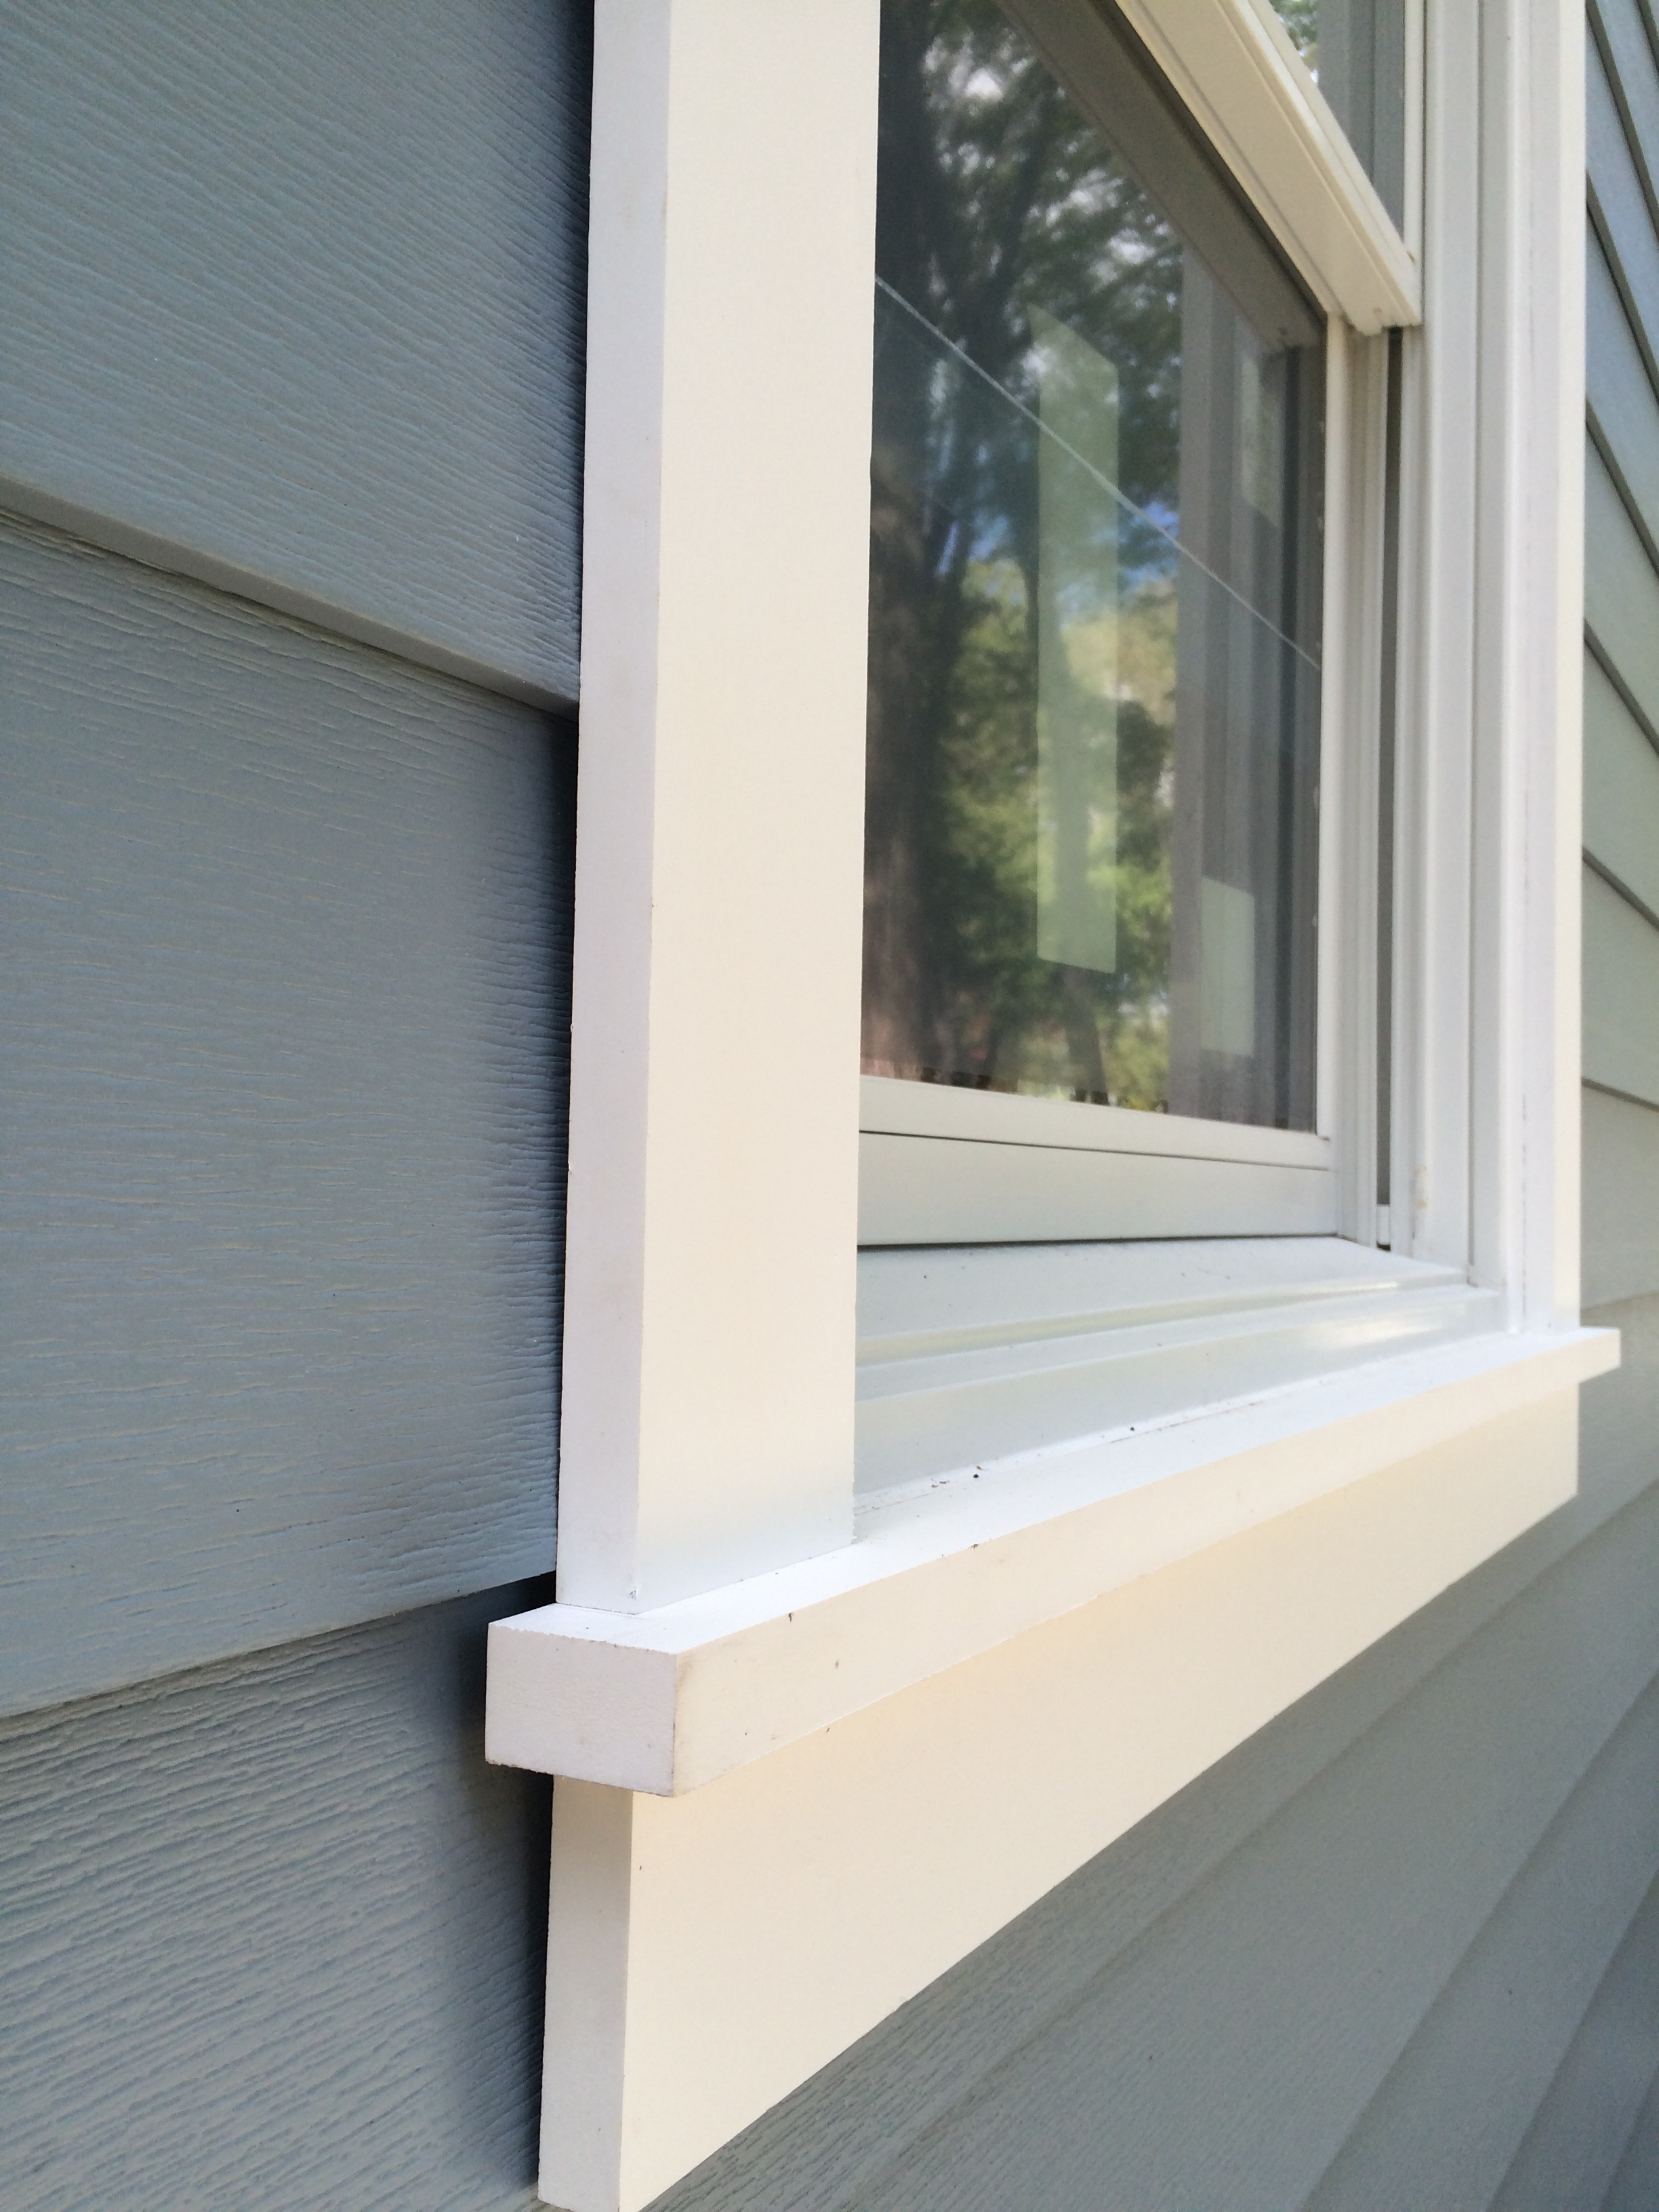 Hanging Outdoor Lights On Vinyl Siding Inside Best And Newest Steps, Lighting, Flowers, Porch 973 795 1627 Vinyl Siding – Install (View 19 of 20)